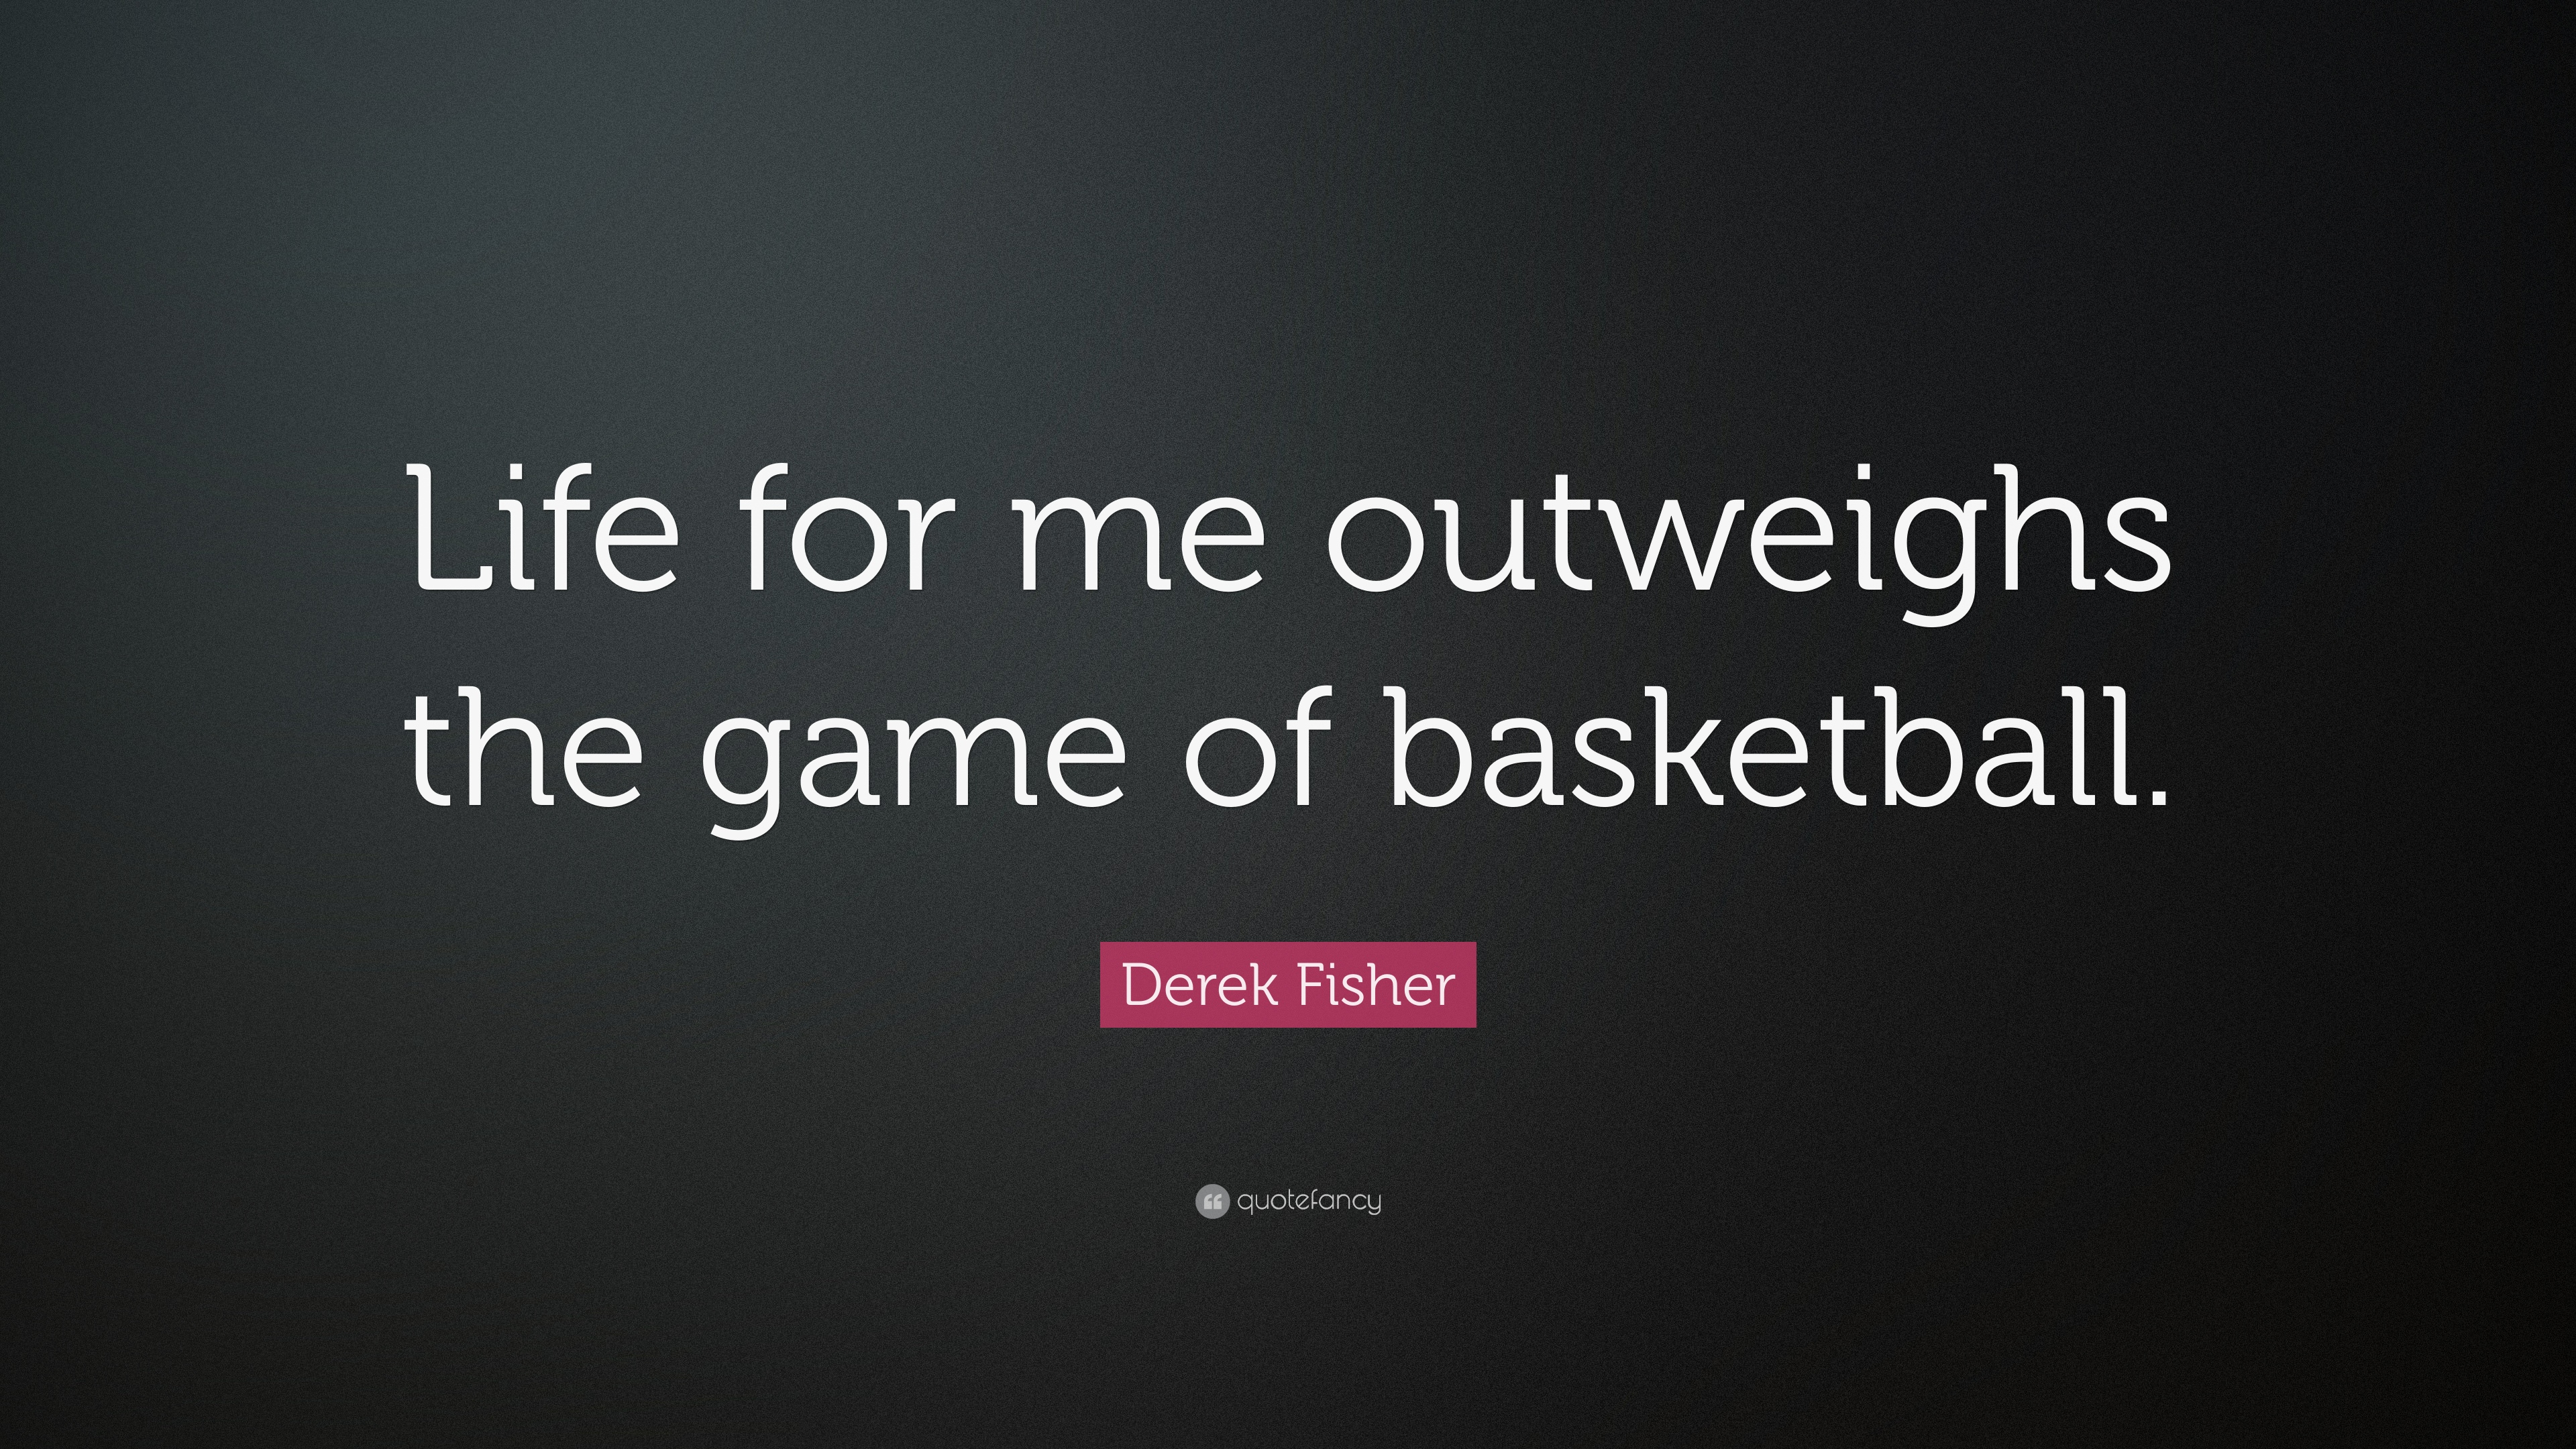 Derek Fisher Quote Life For Me Outweighs The Game Of Basketball